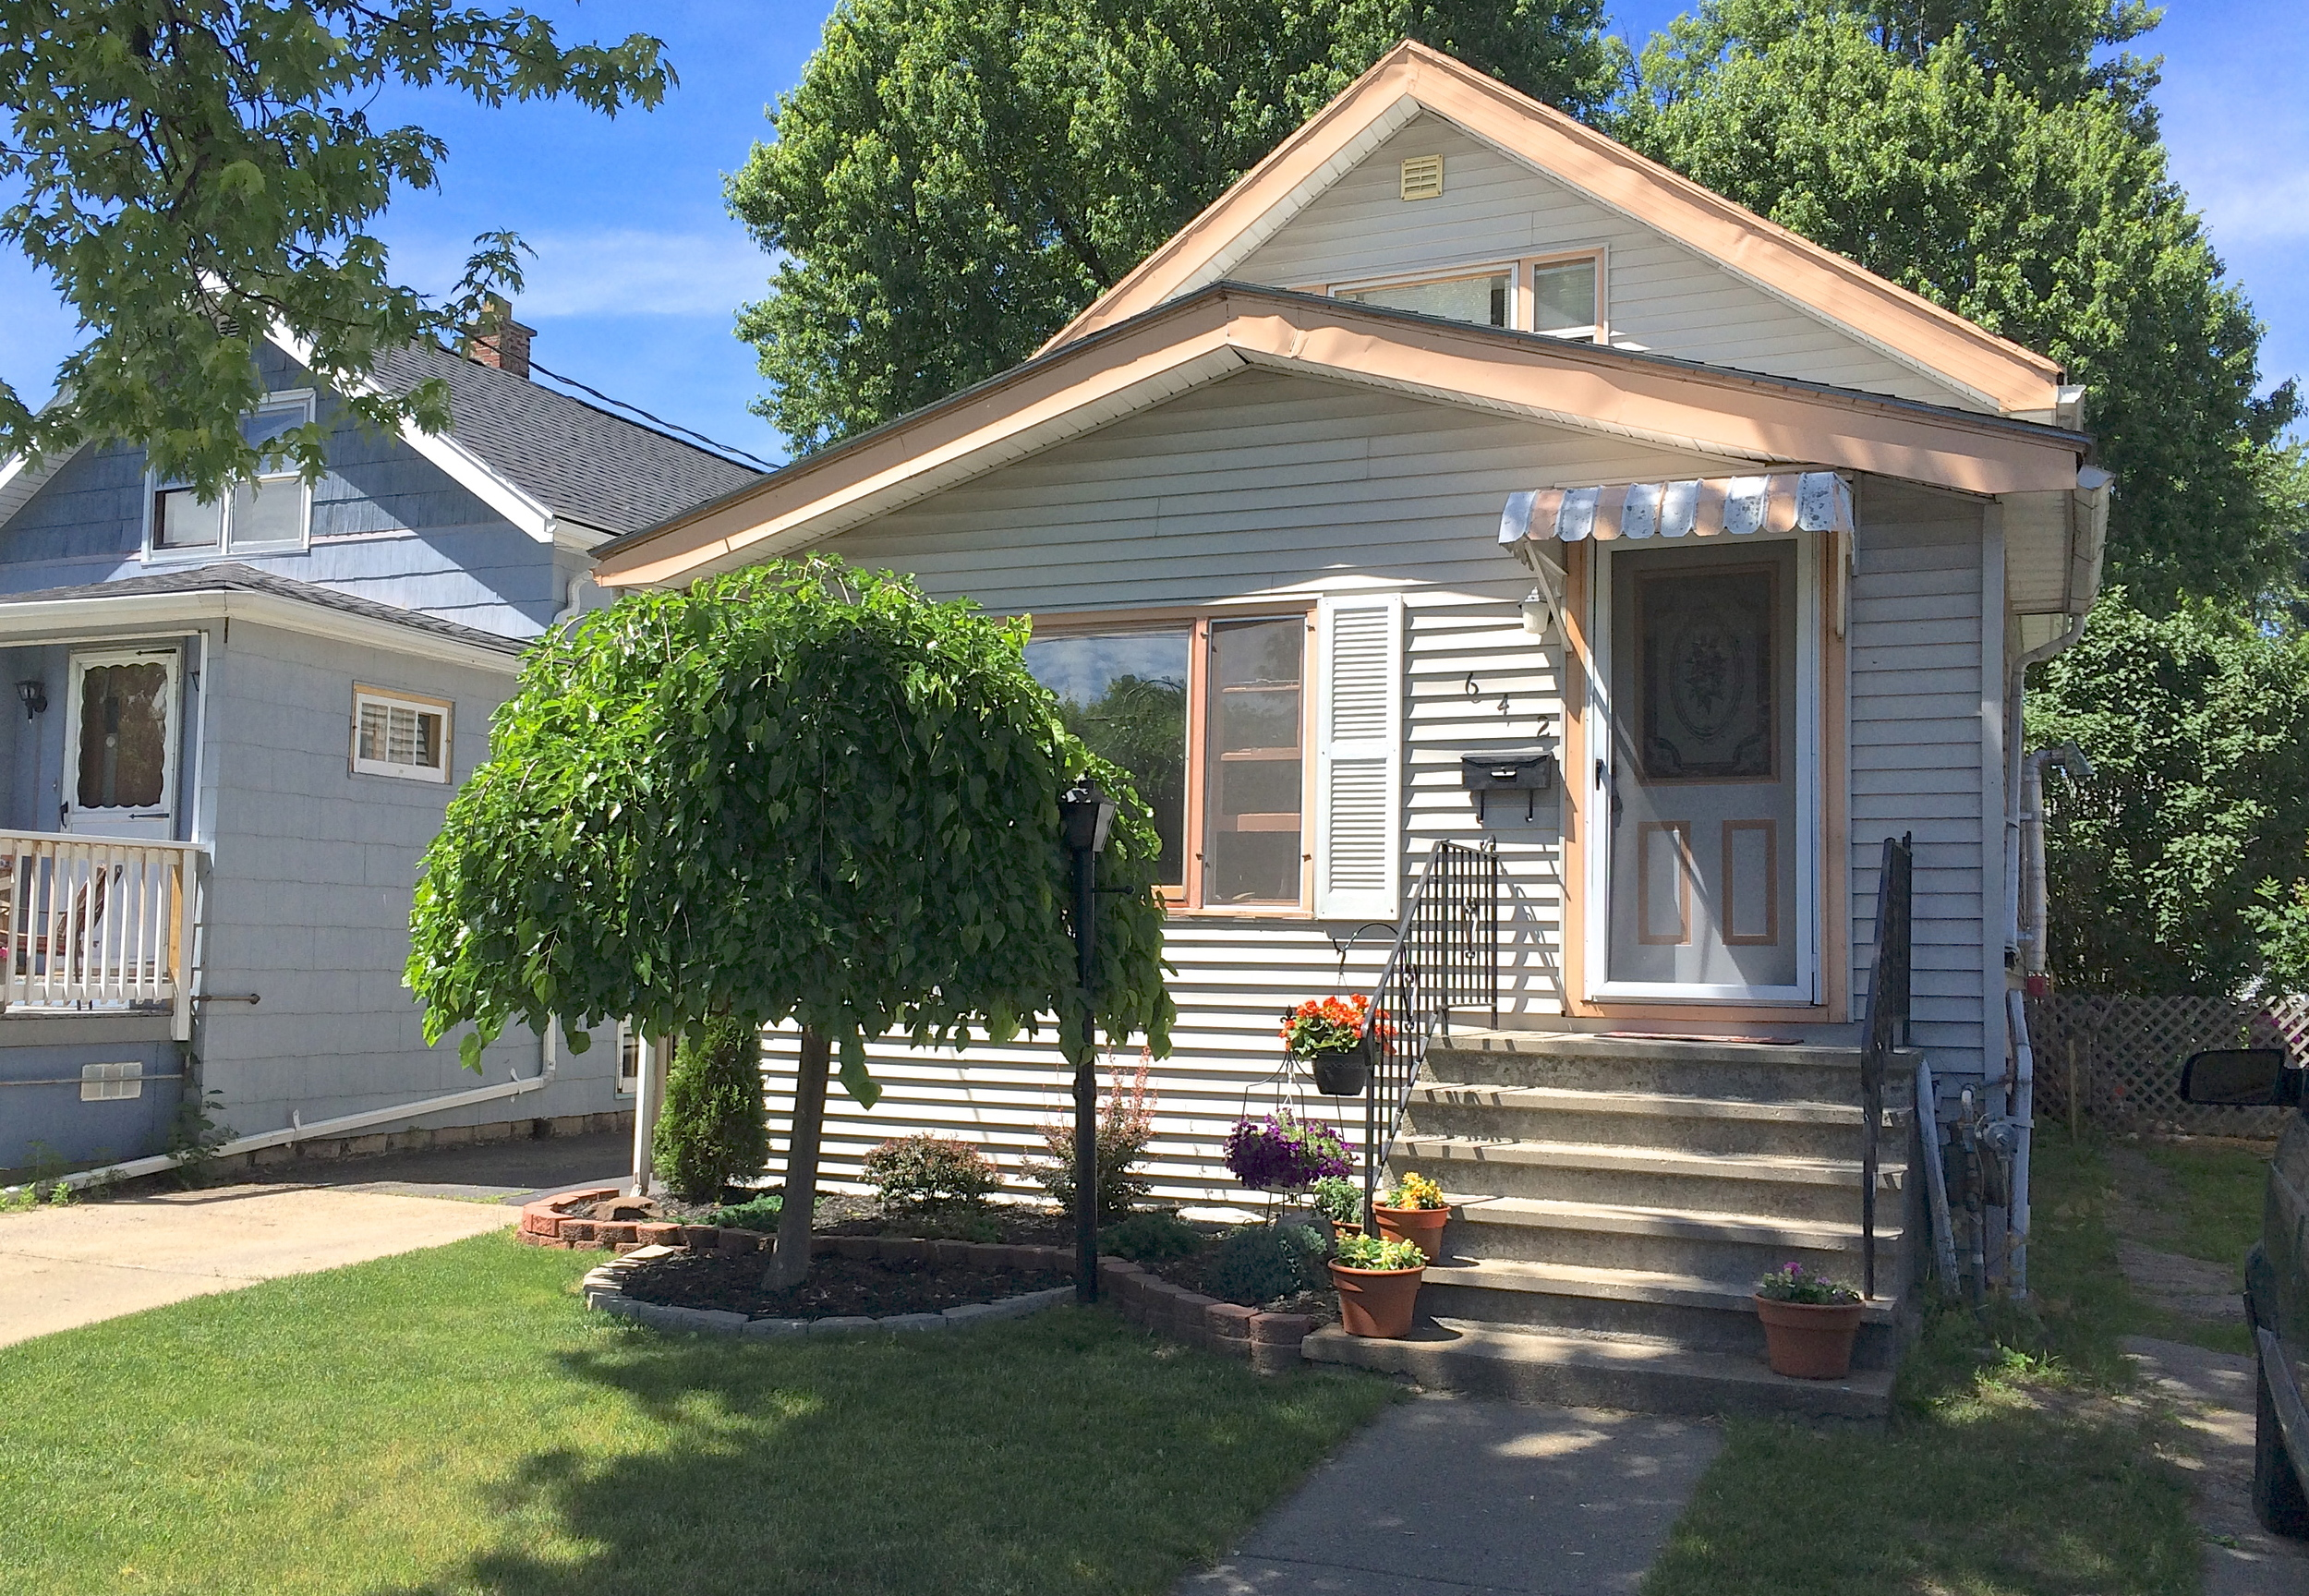 WILL BE RELISTED IN 2015: 642 Marilla St., Buffalo